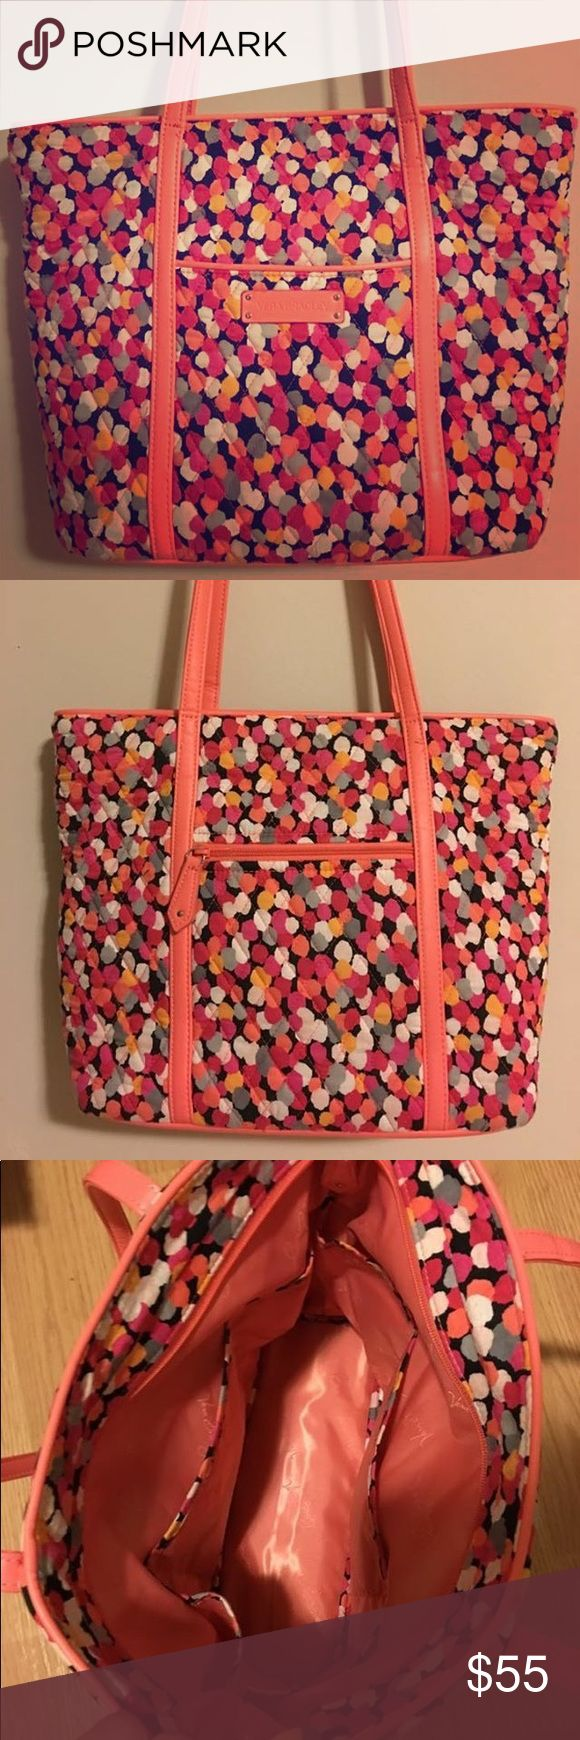 Vera Bradley Tote Like new condition. This is great for a purse or could even be a diaper bag. Vera Bradley Bags Totes